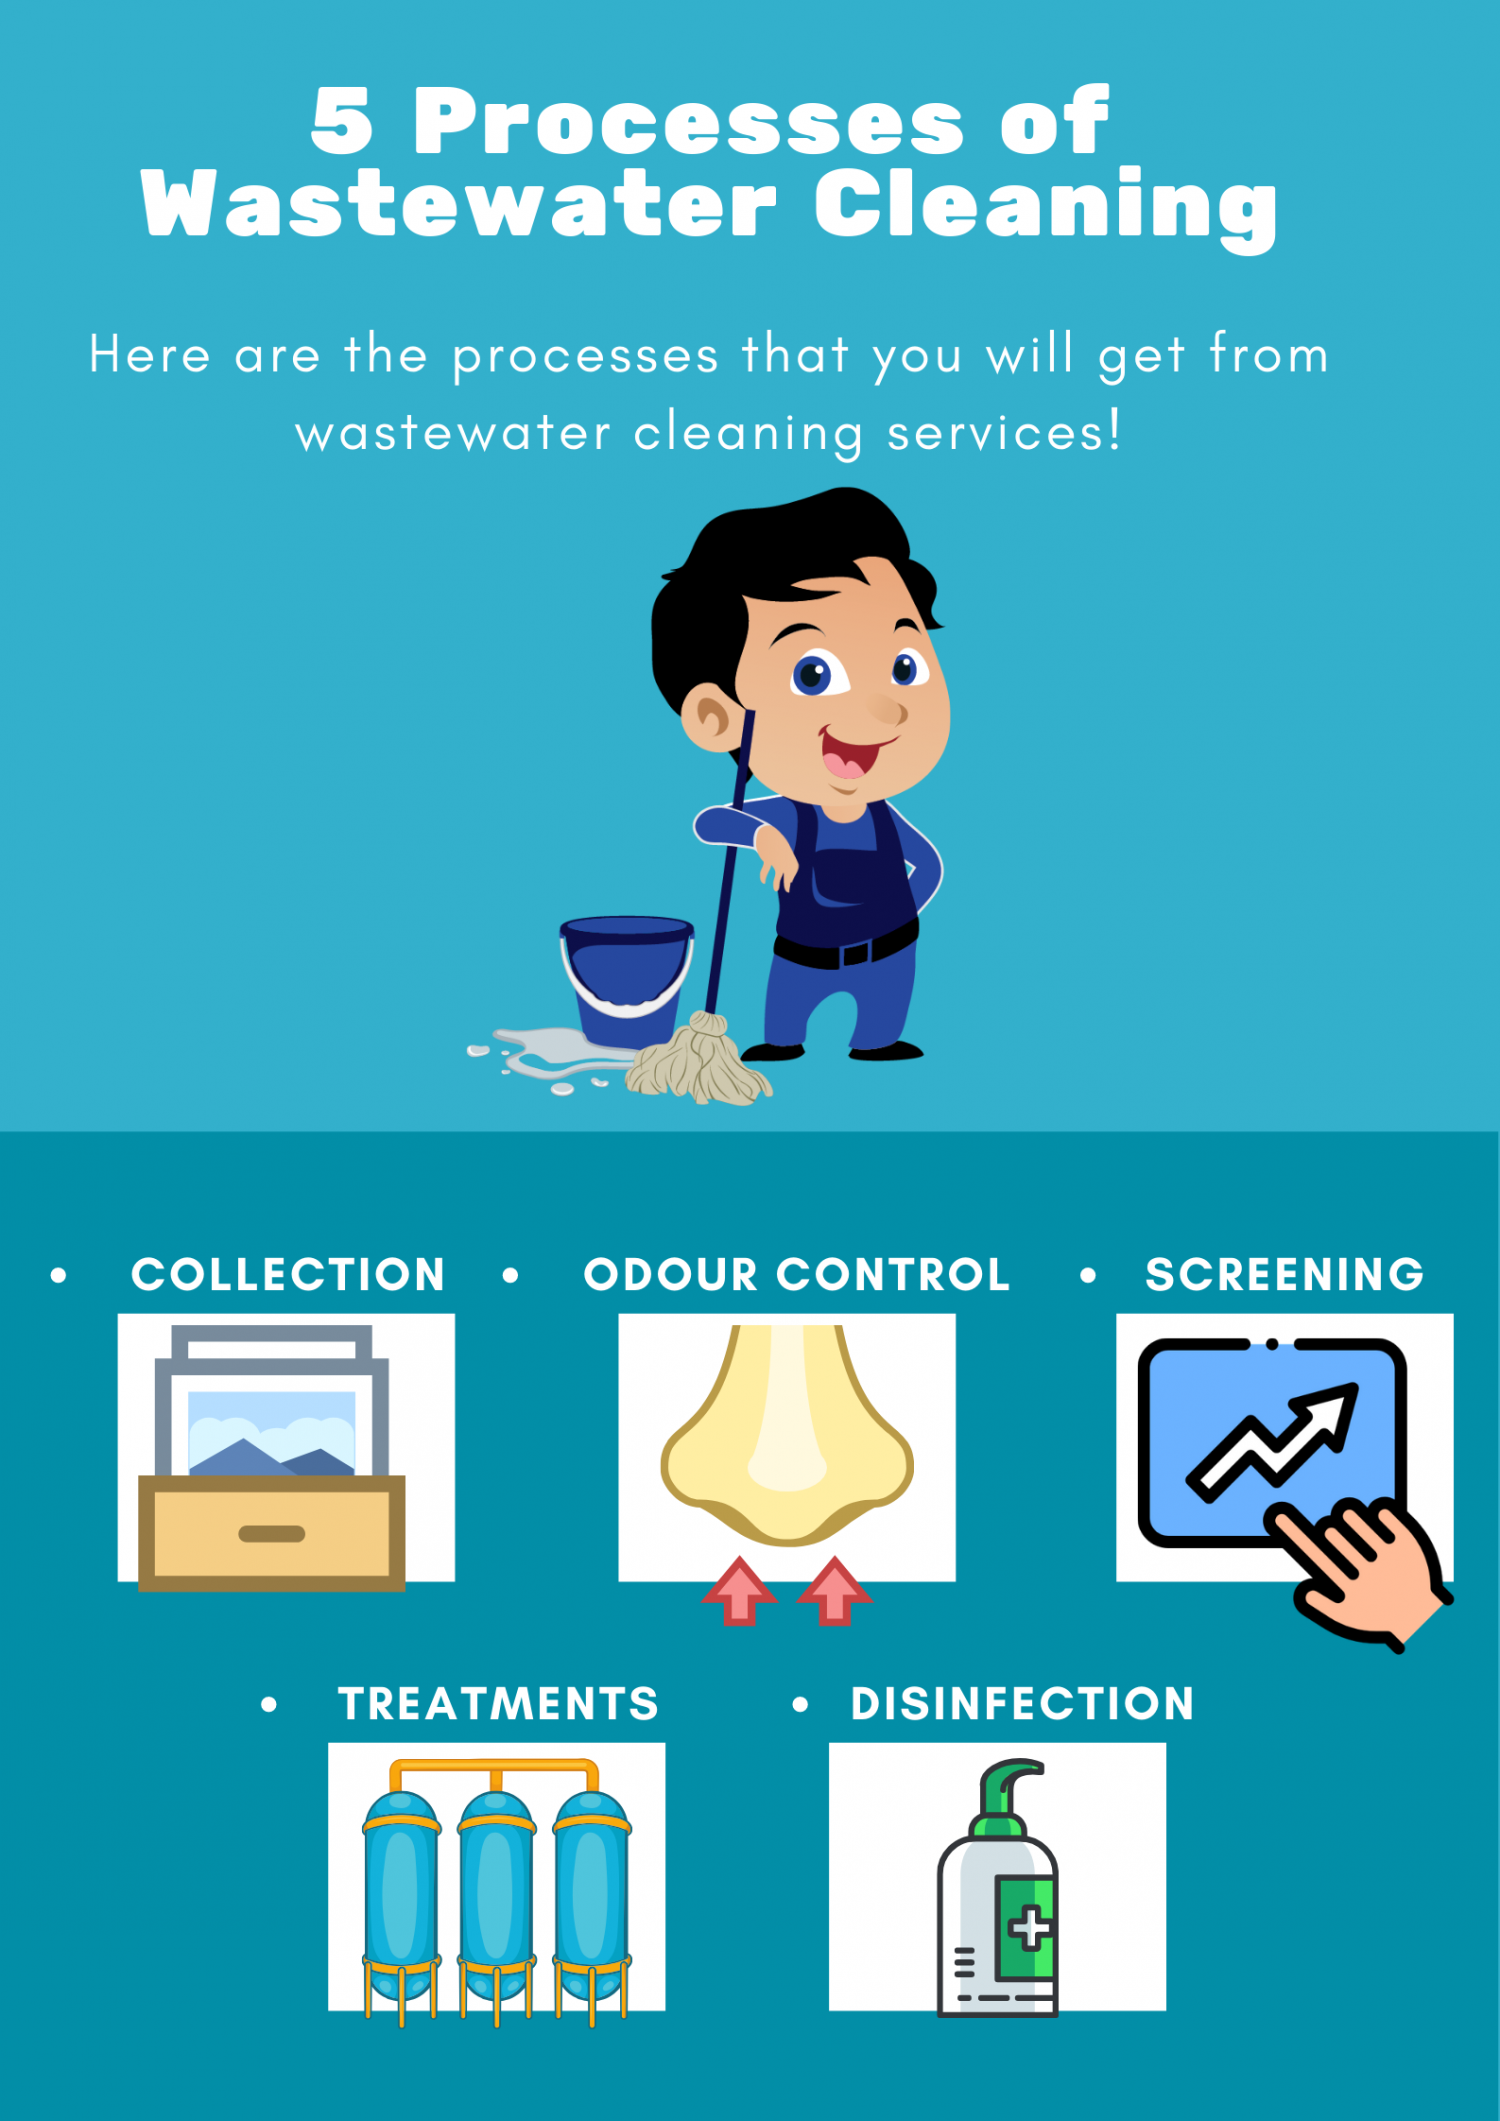 5 Processes of Wastewater Cleaning Infographic